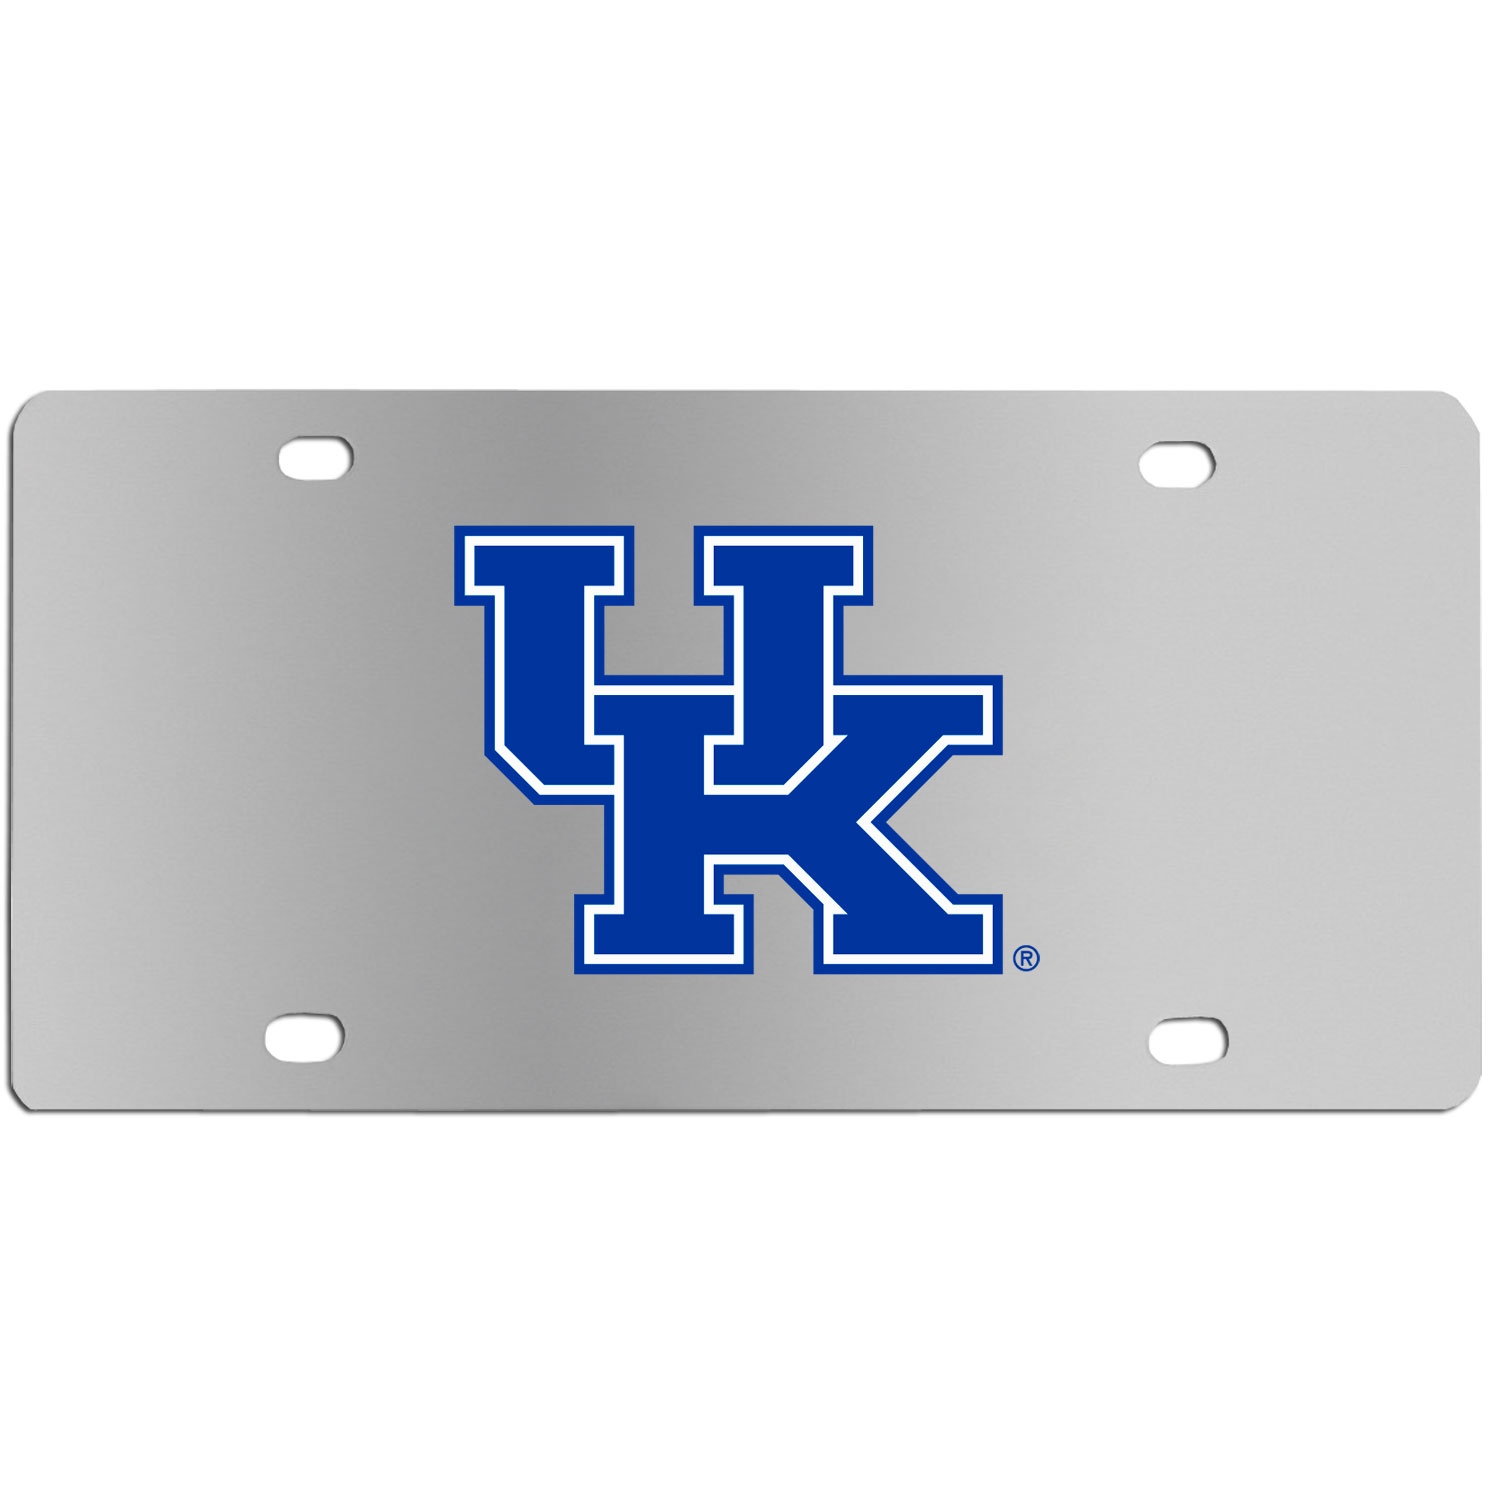 Kentucky Wildcats Steel License Plate Wall Plaque - This high-quality stainless steel license plate features a detailed team logo on a the polished surface. The attractive plate is perfect for wall mounting in your home or office to become the perfect die-hard Kentucky Wildcats fan decor.